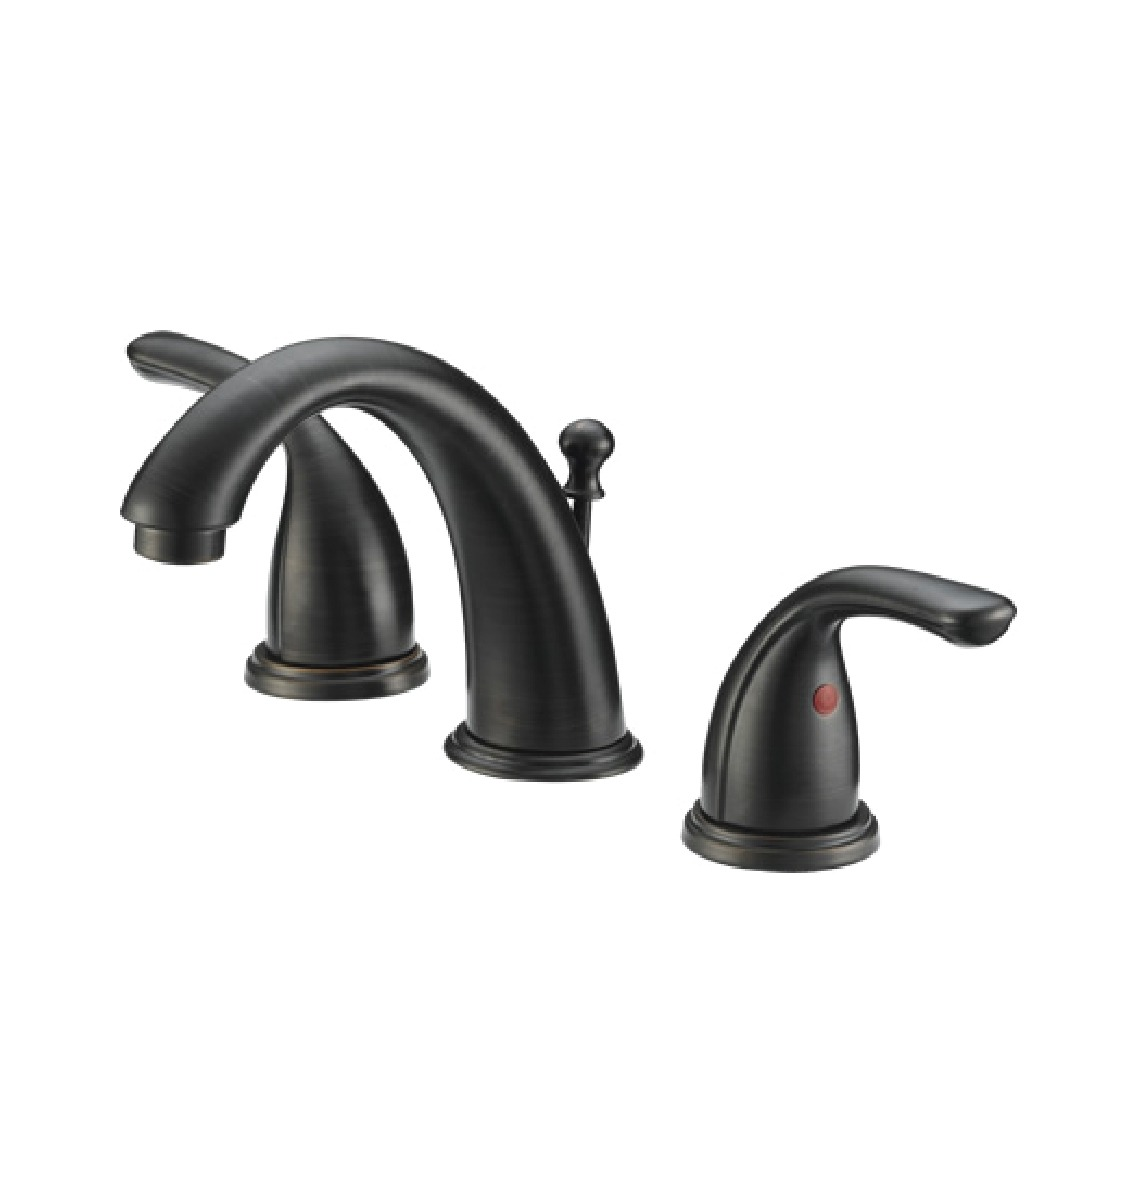 baths faucets bath faucets silver oak p20262 10 6 12 two handle ...